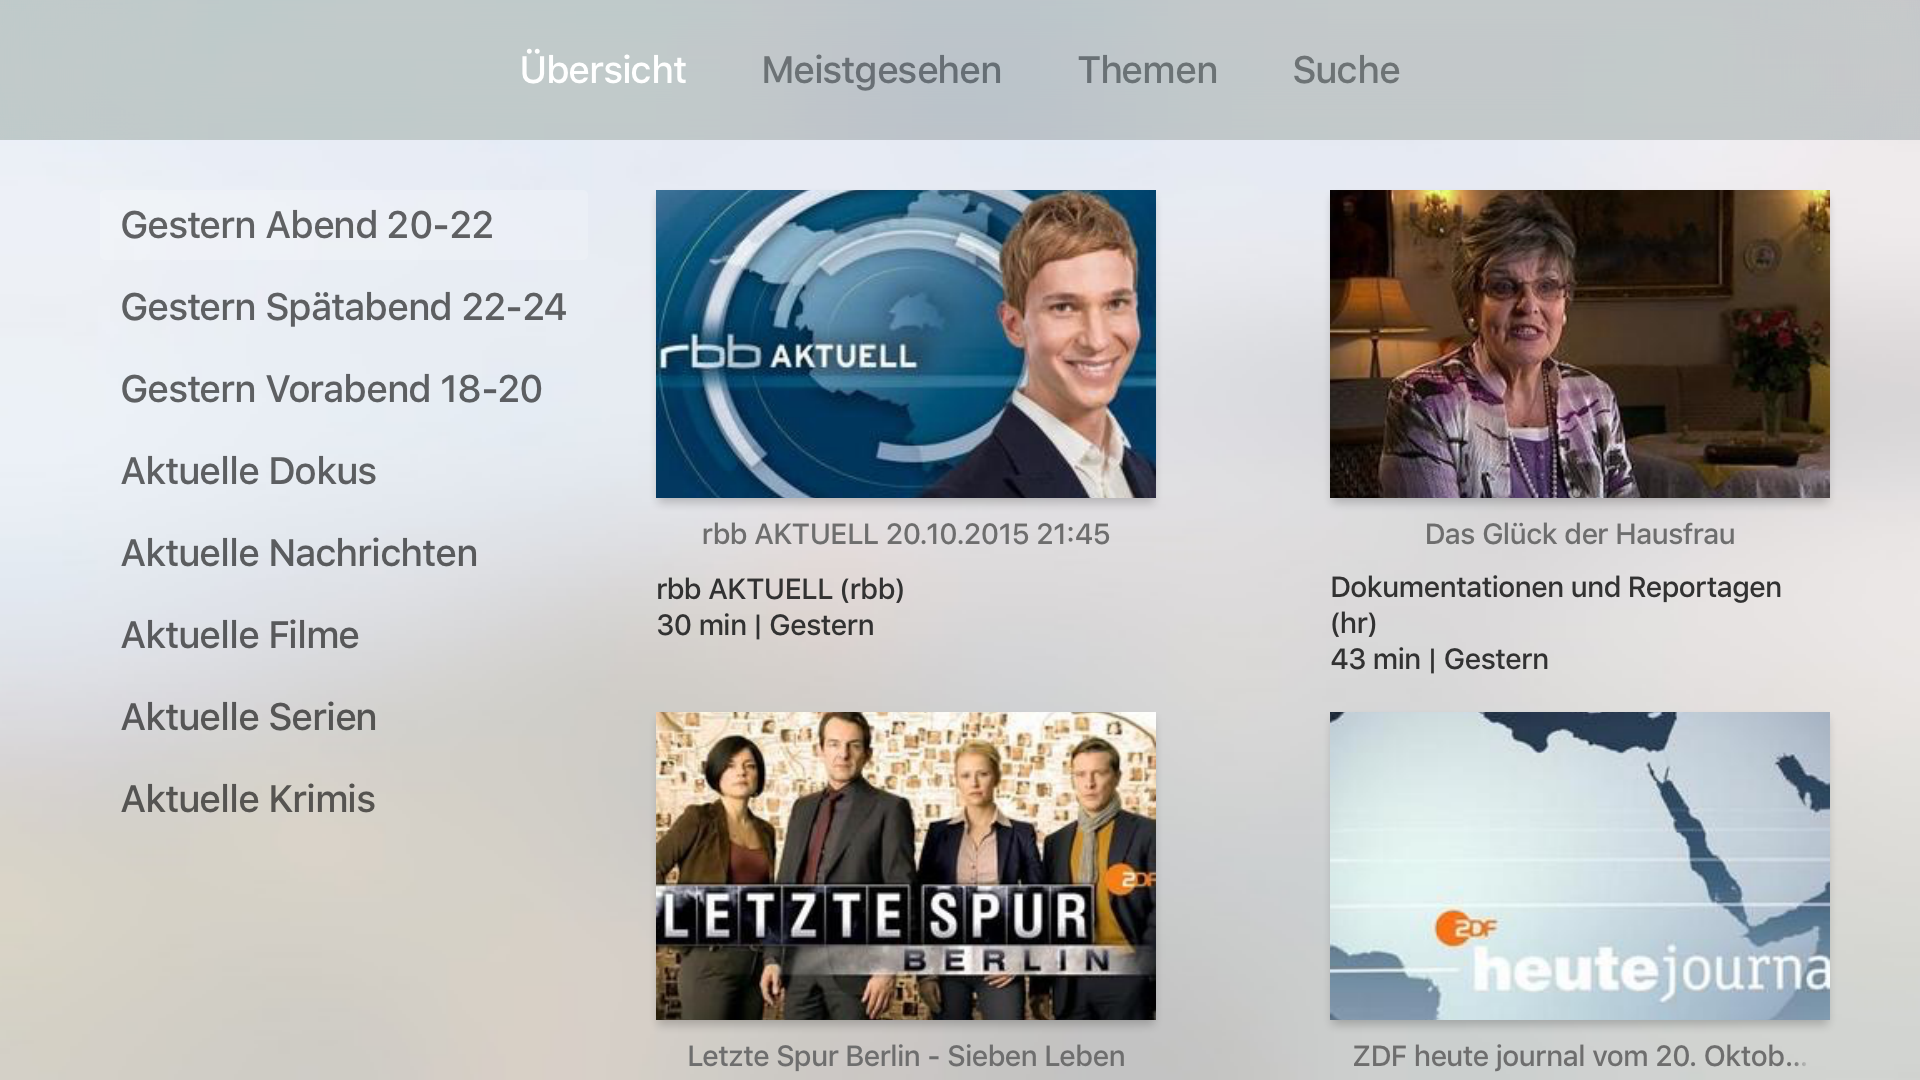 Screenshot Mediathekensuche tvOS App - Apple TV